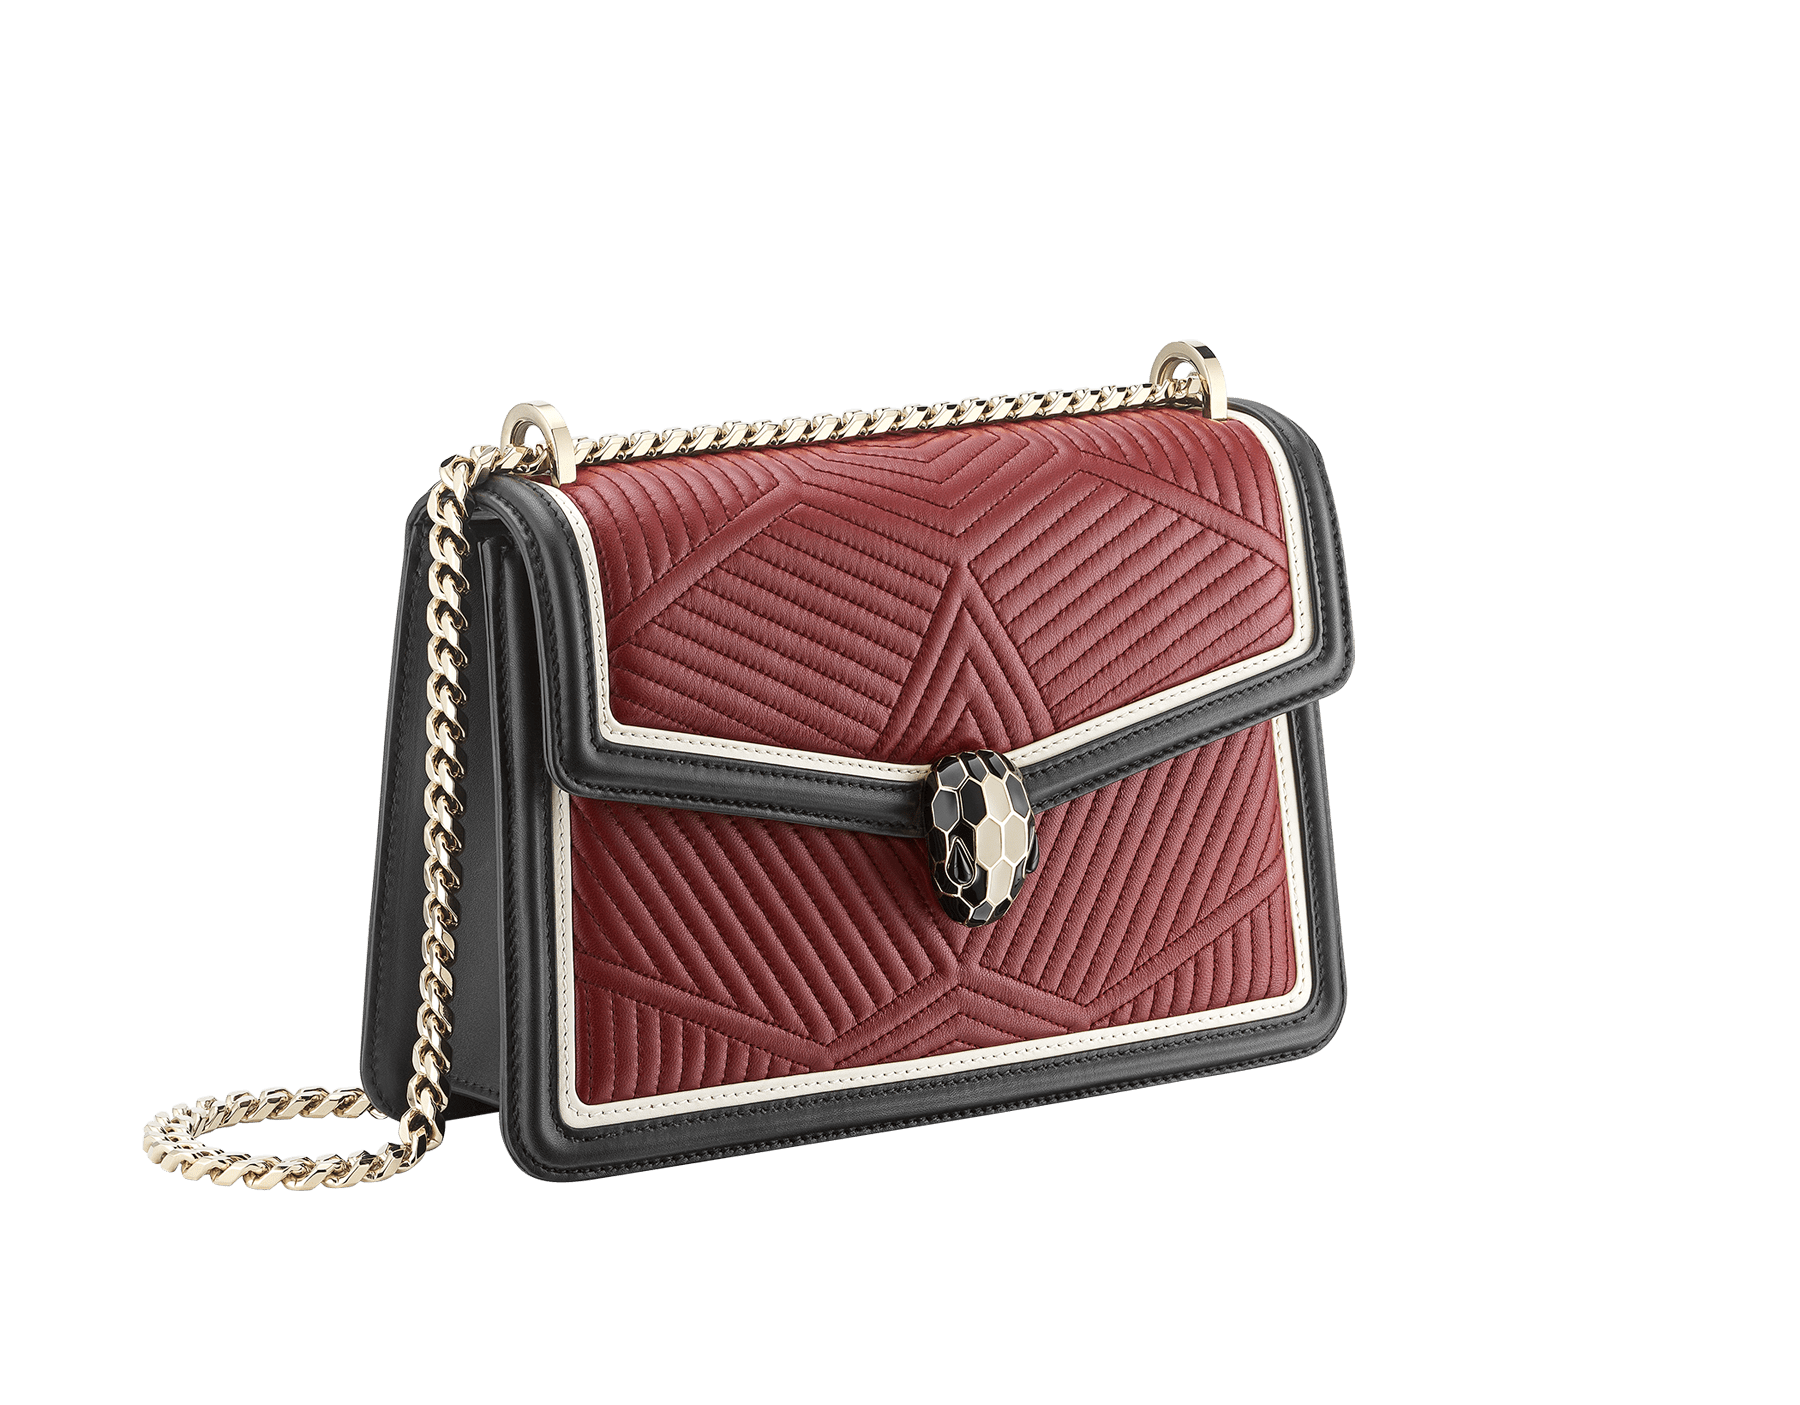 Shoulder bag Serpenti Forever featuring a Framed Quilted motif in roman garnet nappa and black smooth calf leather. Brass light gold plated tempting snake head closure in black and white enamel, with eyes in black onyx. 286628 image 3